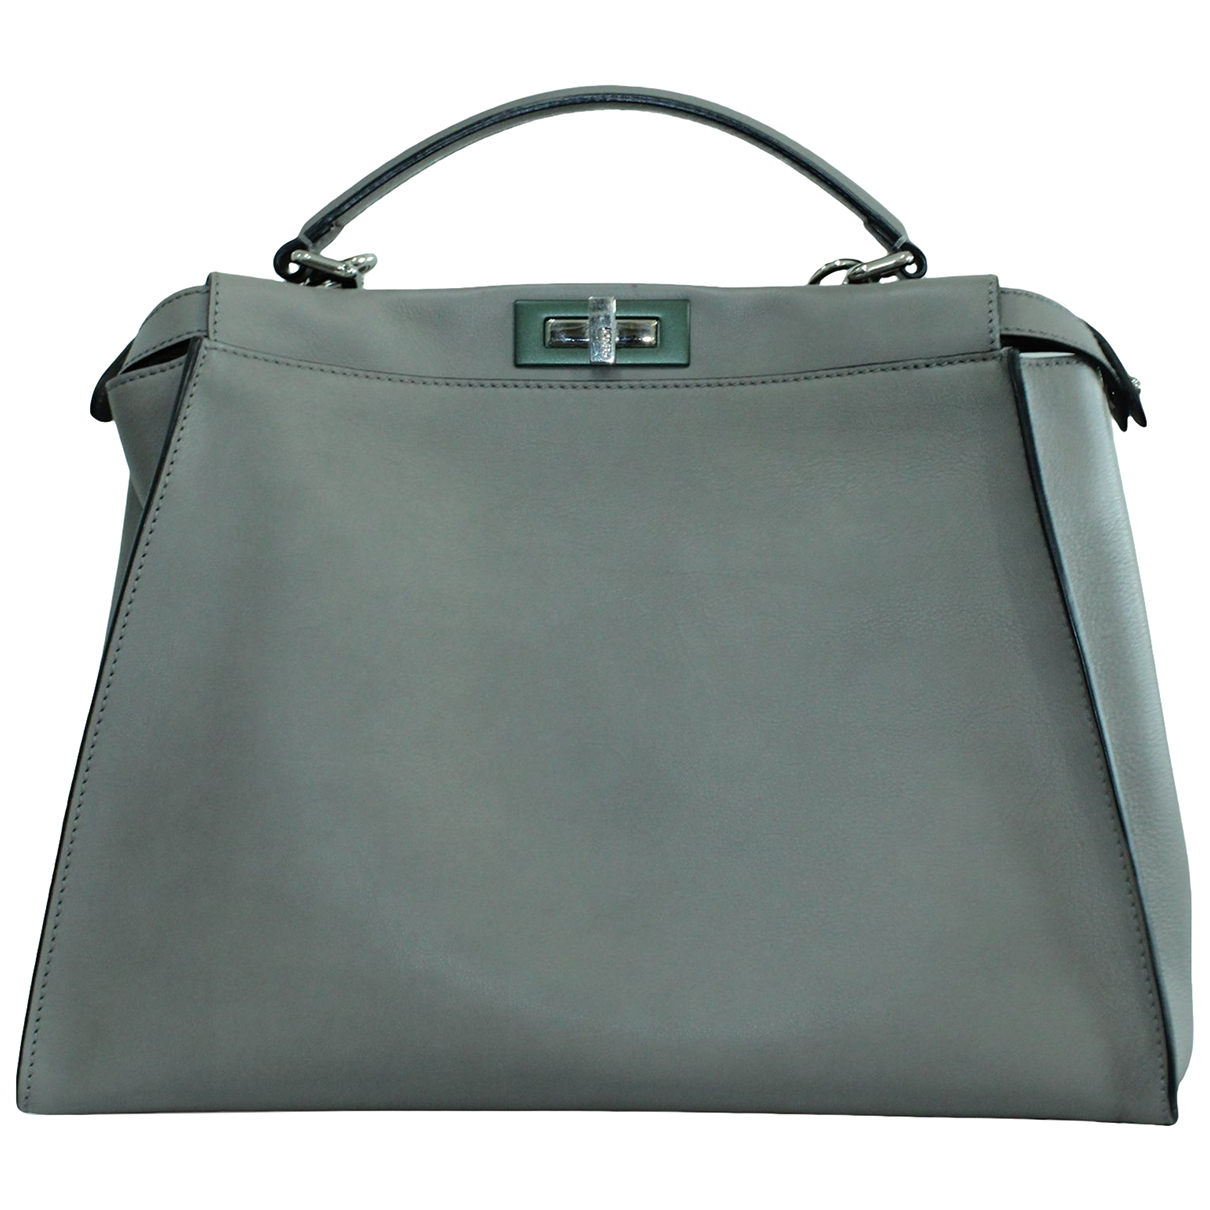 Fendi Peekaboo Grey Leather handbag for Women \N